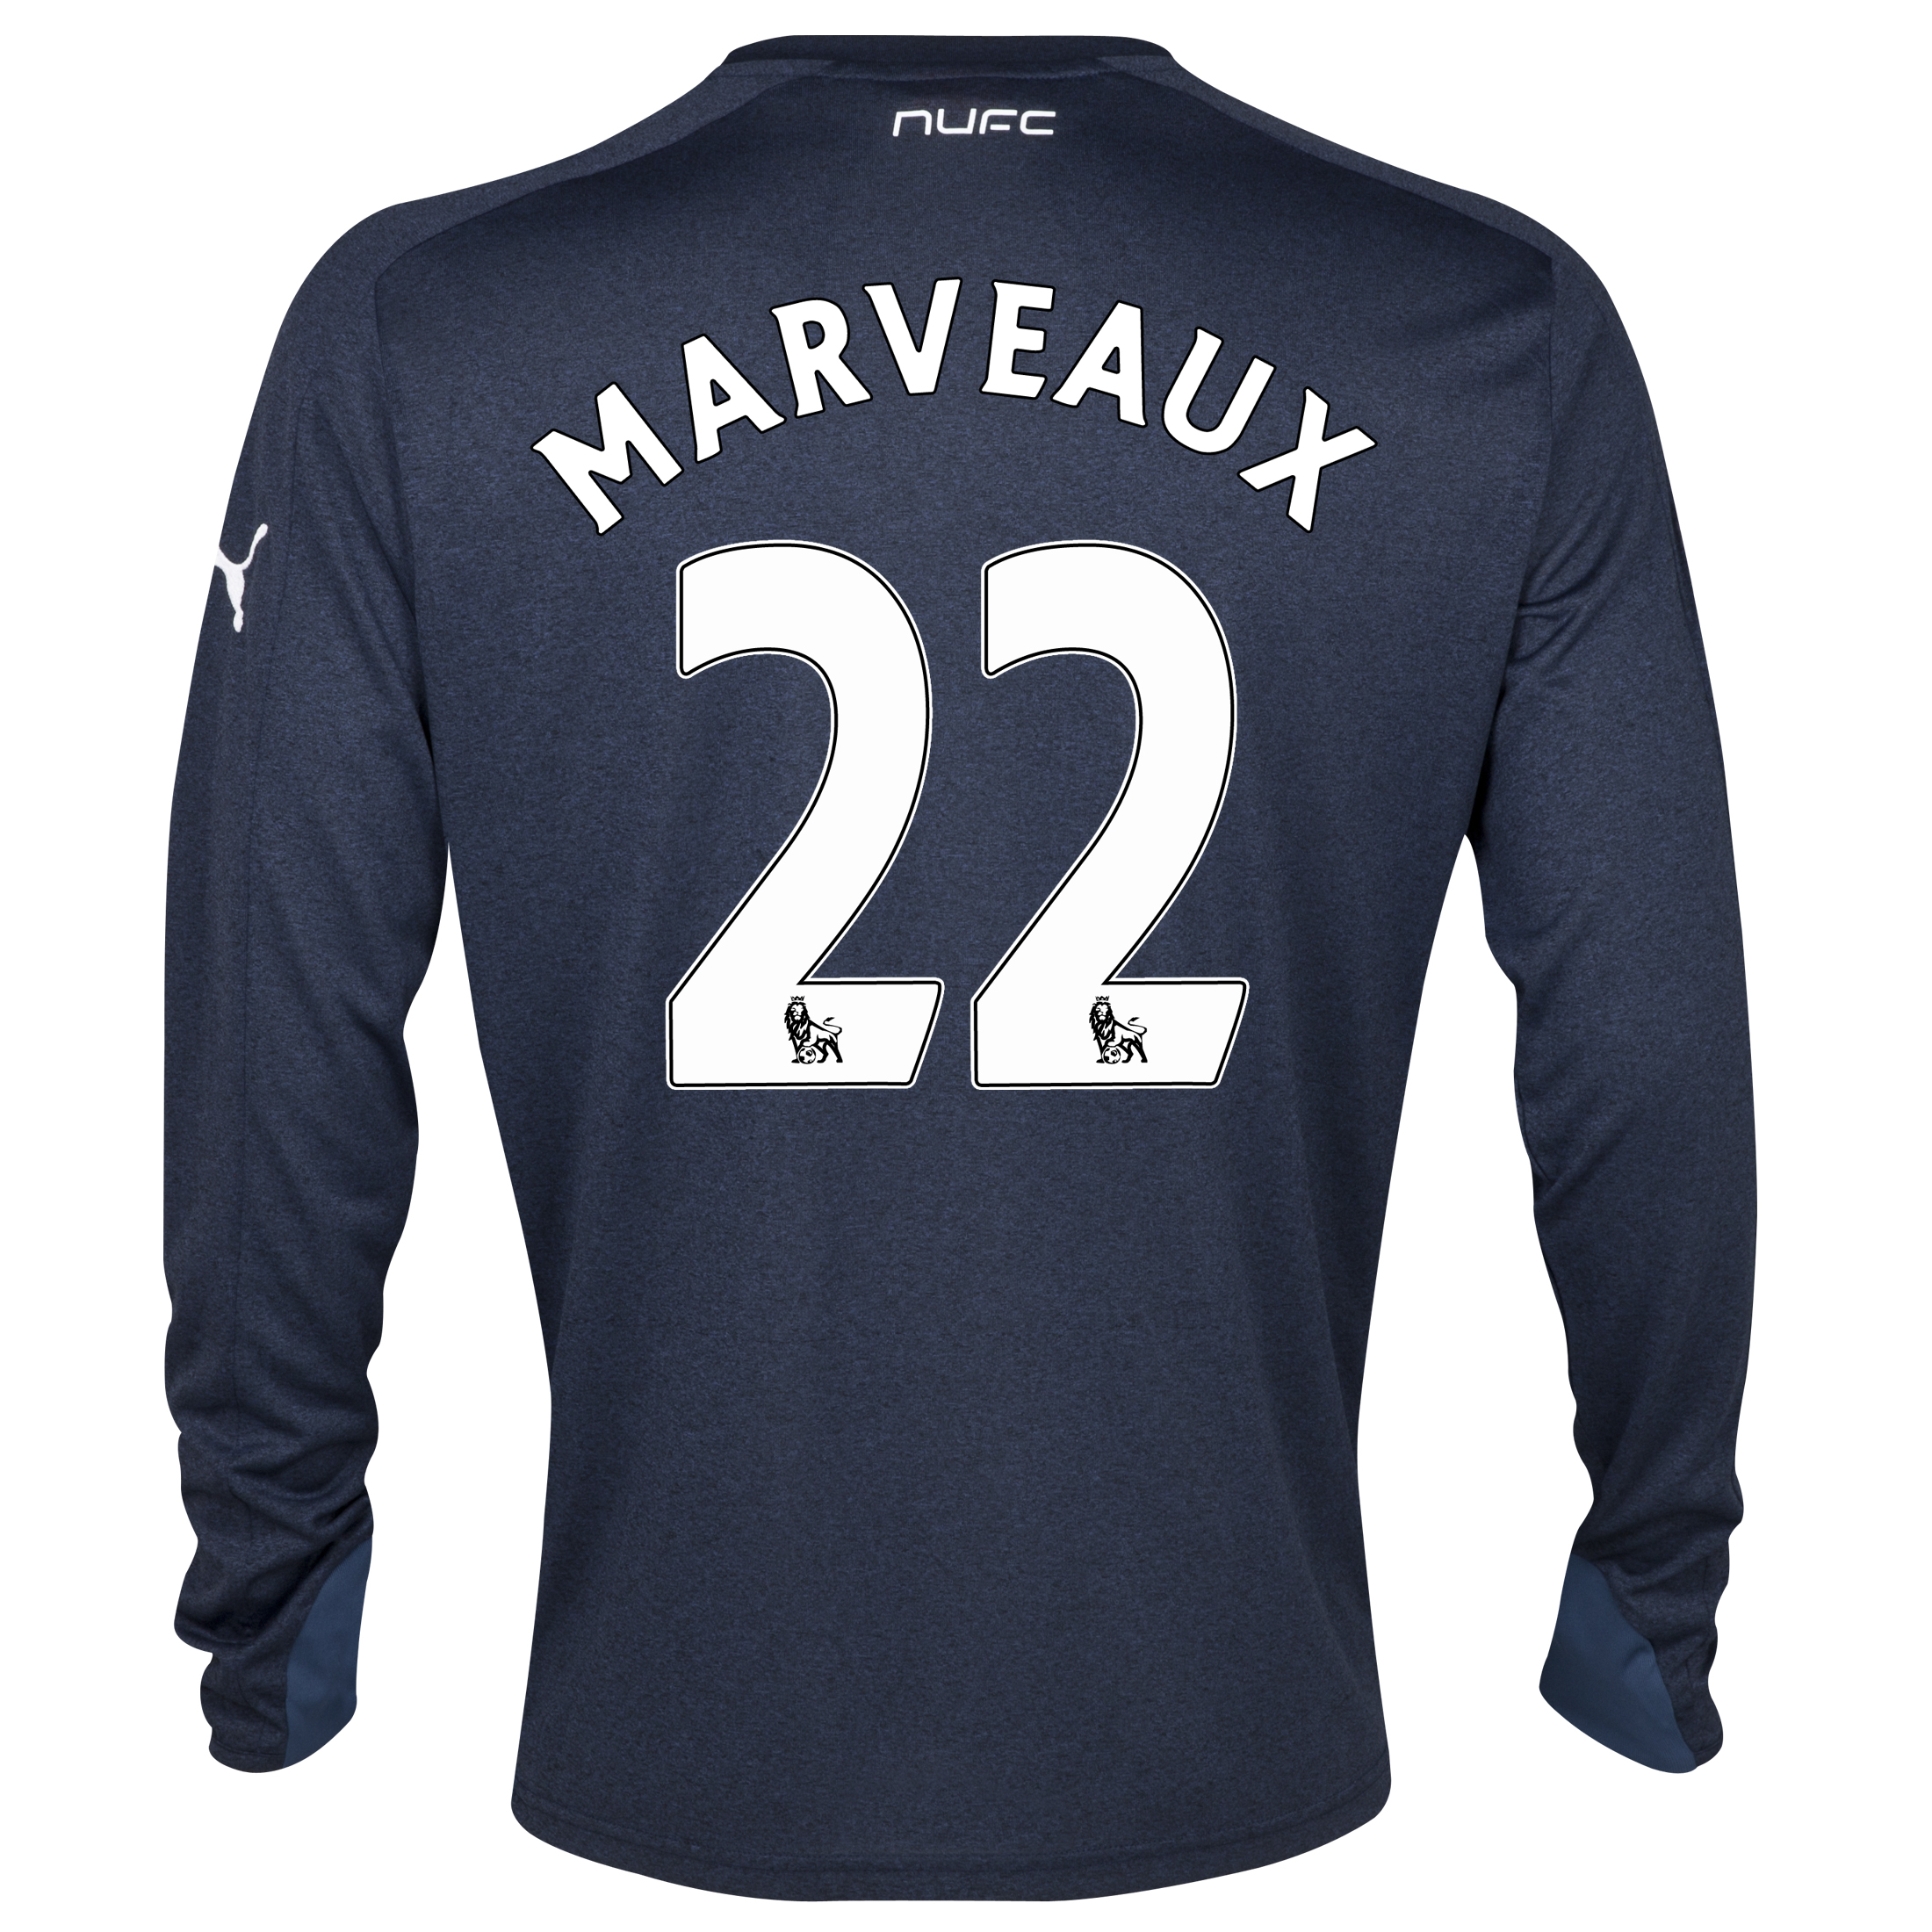 Newcastle United Away Shirt 2013/14 -Womens with Marveaux 22 printing